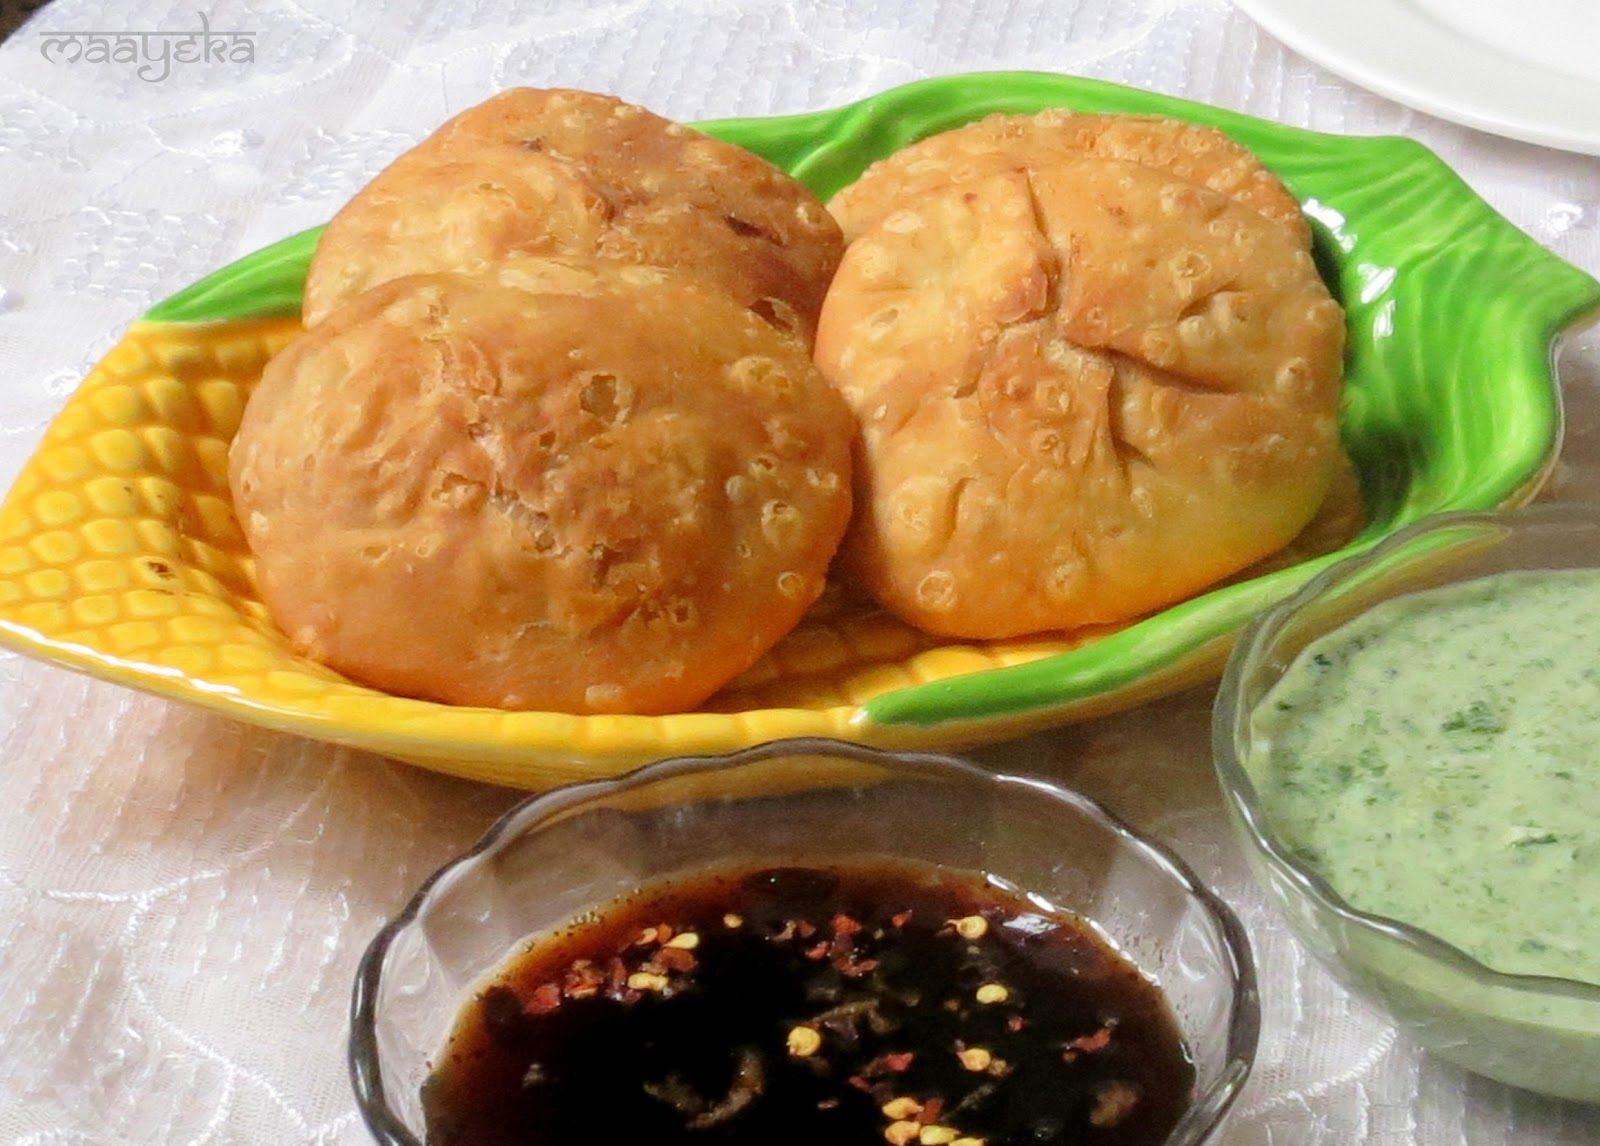 Maayeka authentic indian vegetarian recipes corn kachori spicy maayeka authentic indian vegetarian recipes corn kachori spicy corn puffs forumfinder Gallery